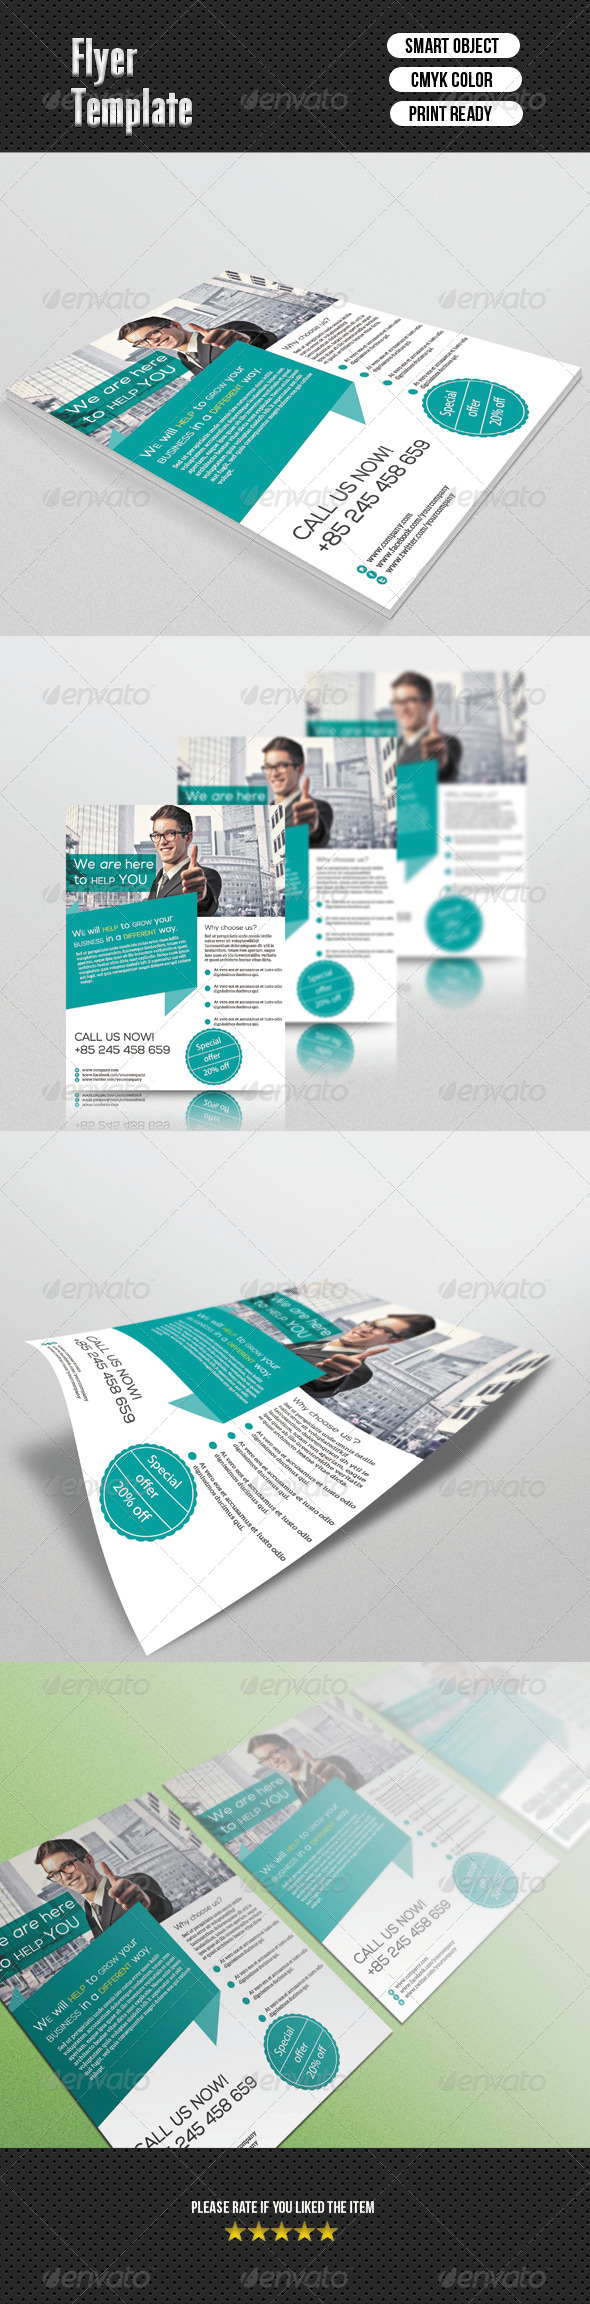 GraphicRiver Corporate Flyer Template 6668188